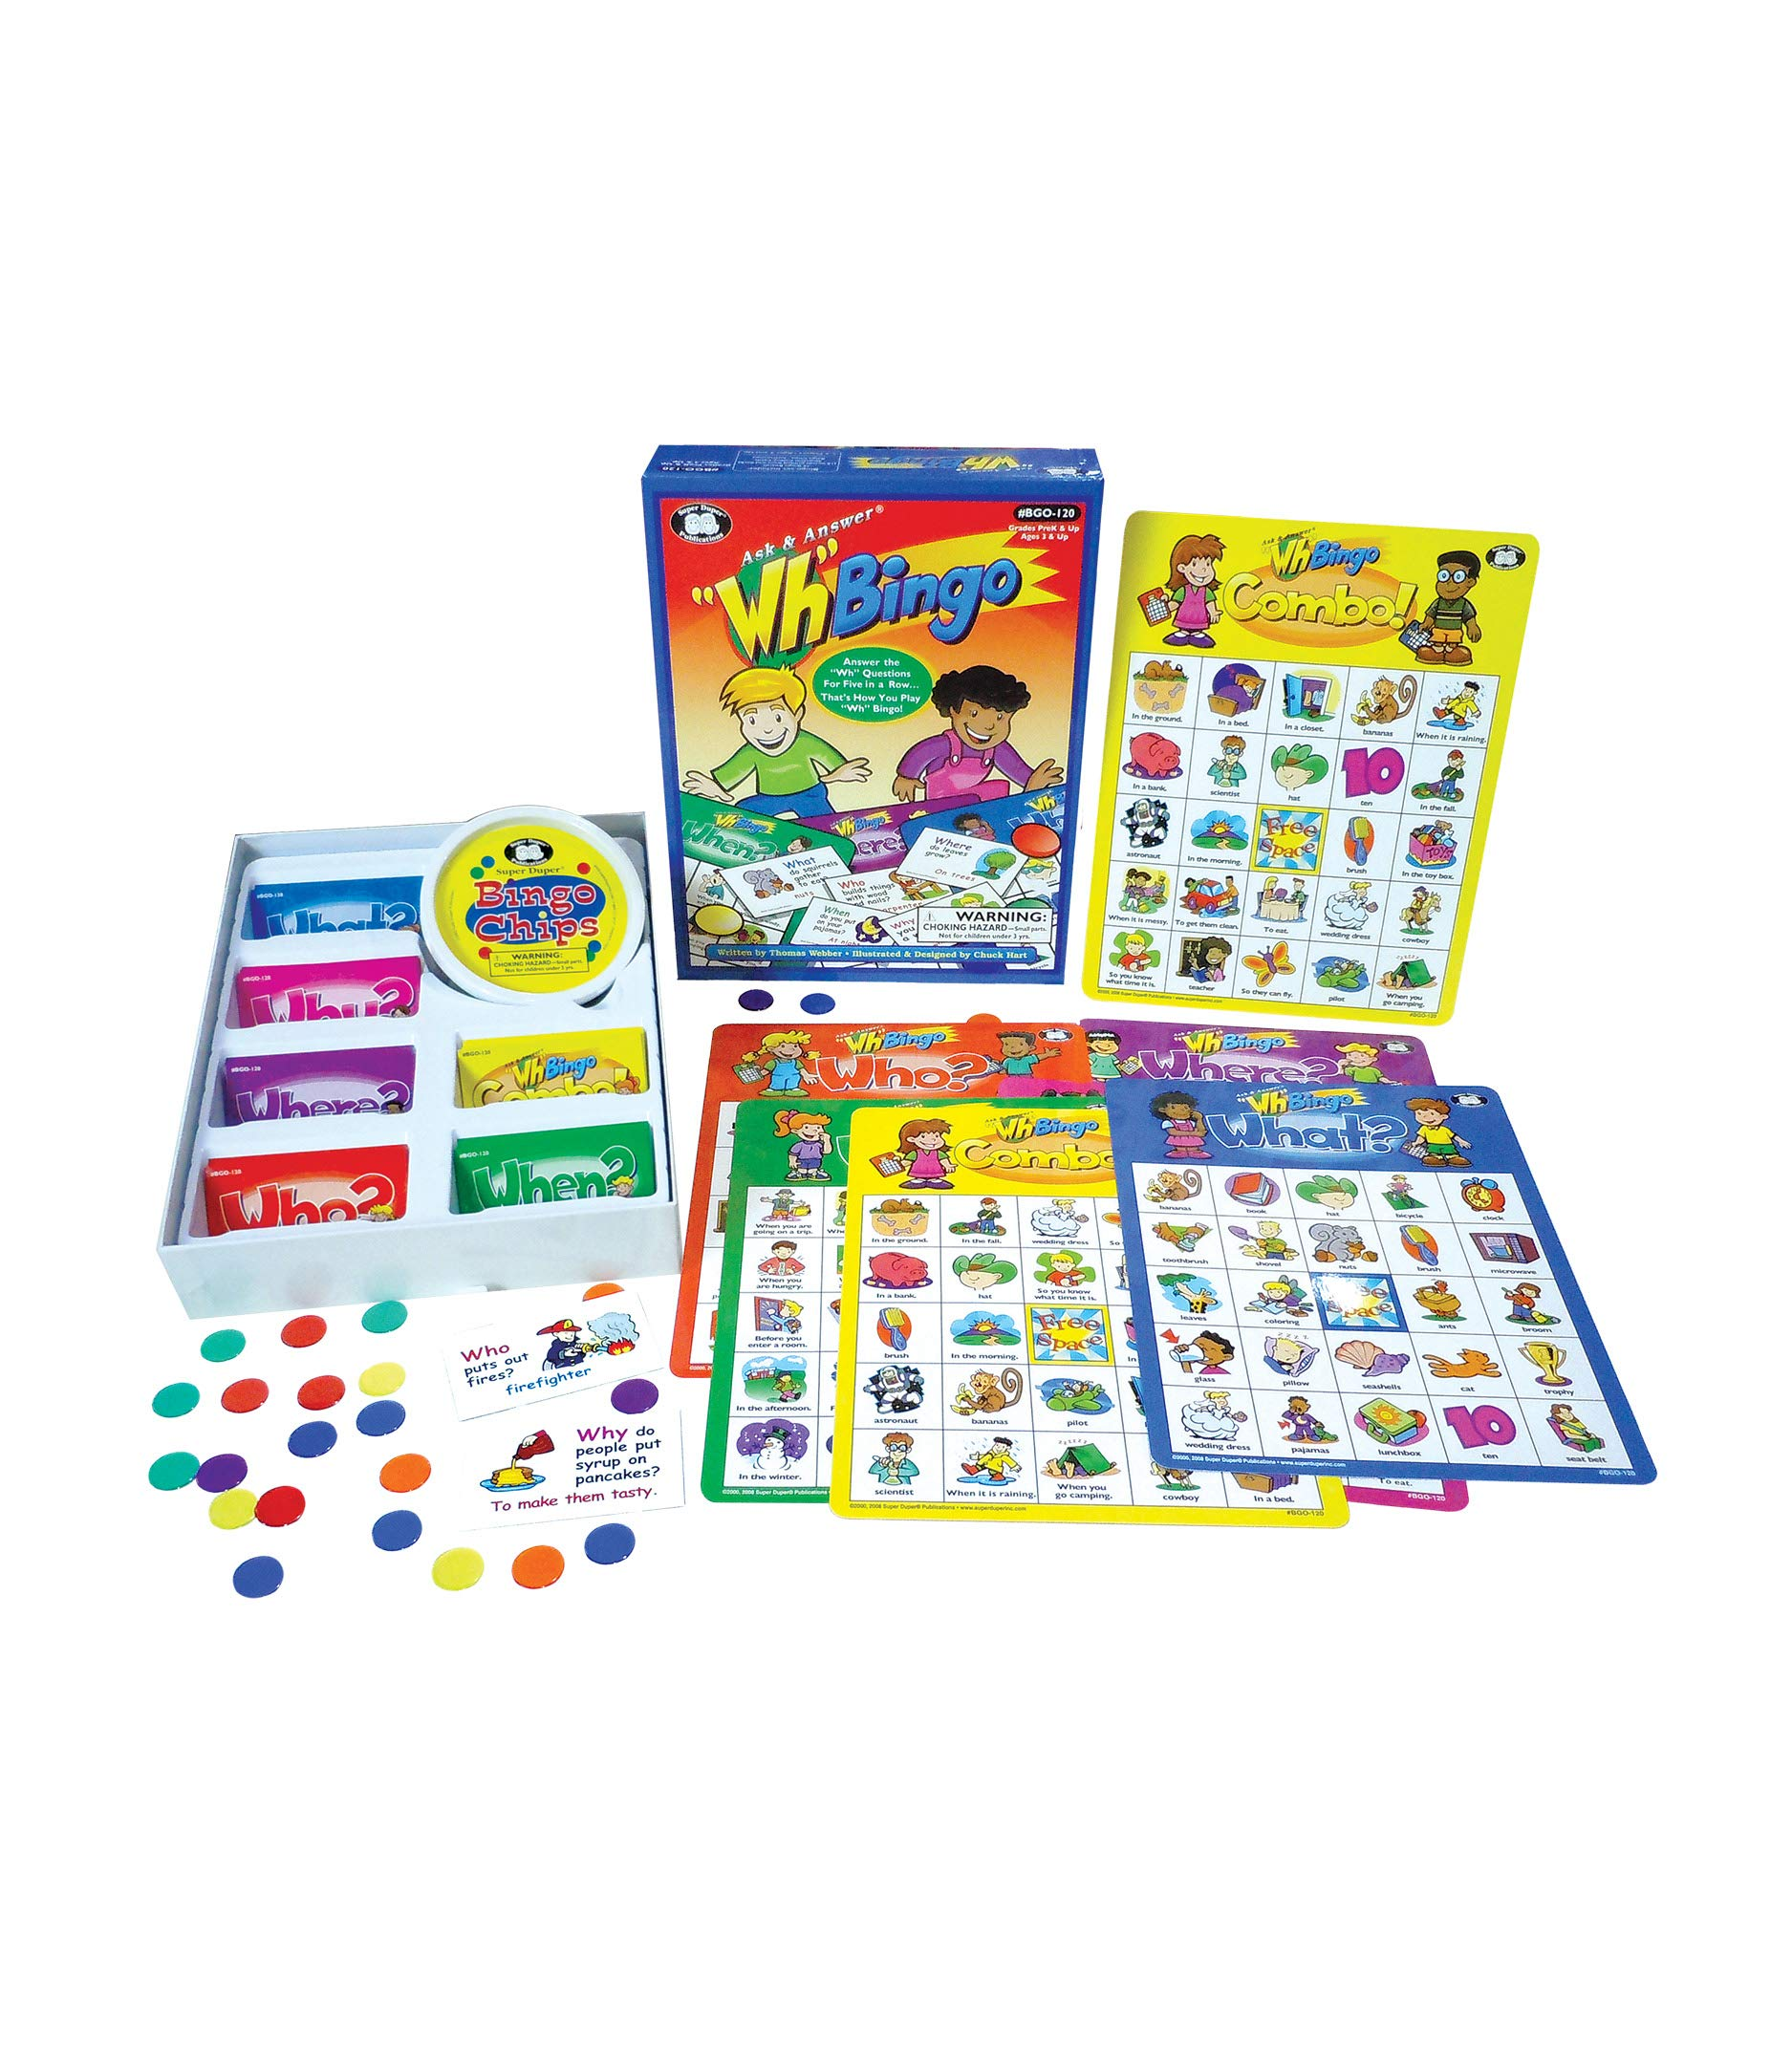 Super Duper Publications | Ask & Answer Wh Bingo Board Game | Comprehension, Verbal, and Communication Skills | Who, What, Where, When, and Why Questions | Educational Learning Materials for Children